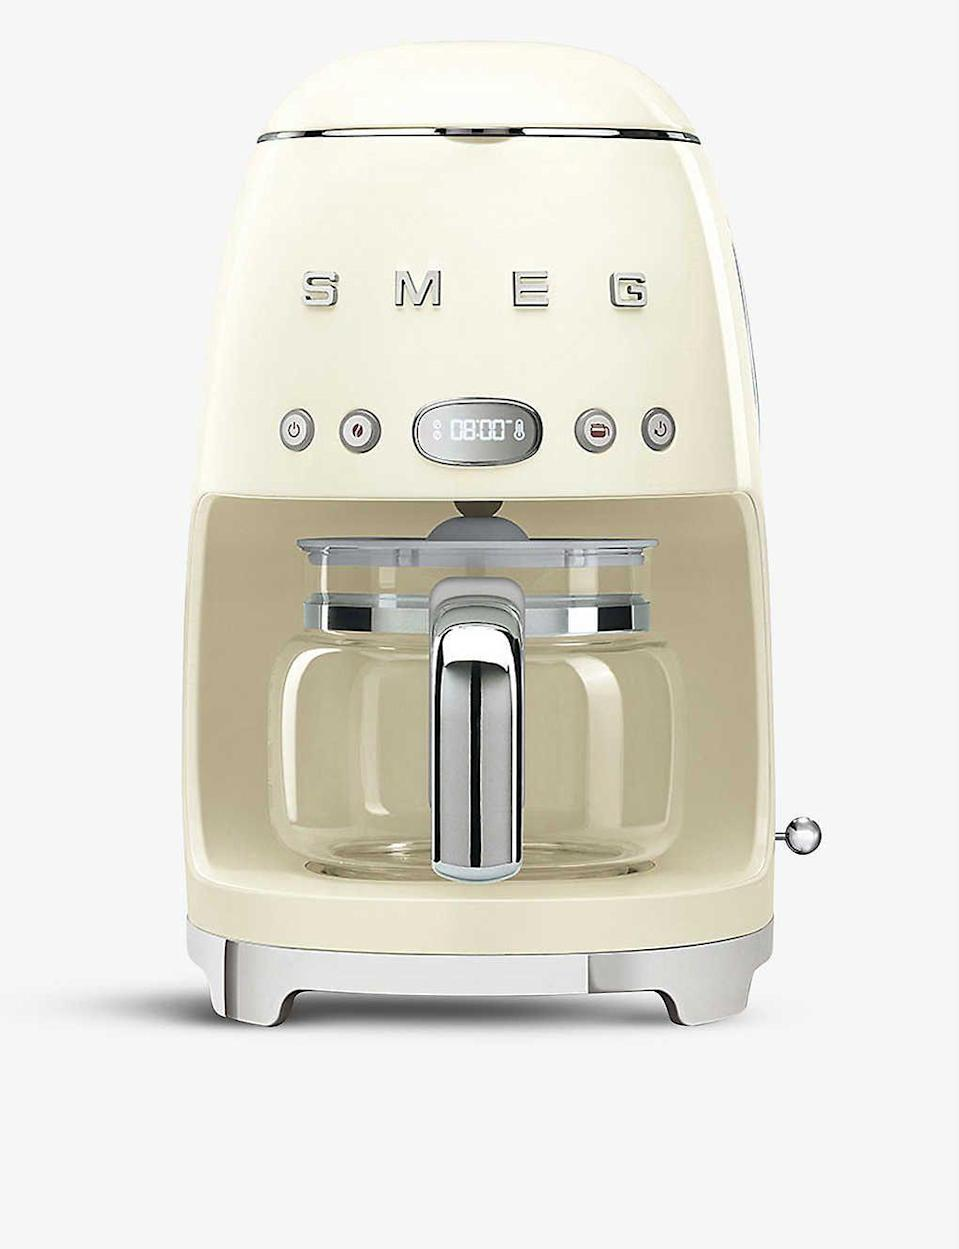 """<p><strong>Smeg</strong></p><p>selfridges.com.us</p><p><strong>$220.00</strong></p><p><a href=""""https://go.redirectingat.com?id=74968X1596630&url=https%3A%2F%2Fwww.selfridges.com%2FUS%2Fen%2Fcat%2Fsmeg-drip-filter-coffee-machine_R03671413&sref=https%3A%2F%2Fwww.harpersbazaar.com%2Ffashion%2Ftrends%2Fg24061584%2Fbest-gifts-for-friends-ideas%2F"""" rel=""""nofollow noopener"""" target=""""_blank"""" data-ylk=""""slk:Shop Now"""" class=""""link rapid-noclick-resp"""">Shop Now</a></p><p>For your friend who is always on the run, Smeg's drip coffee machine will get her day started the <em>right</em> way. </p>"""